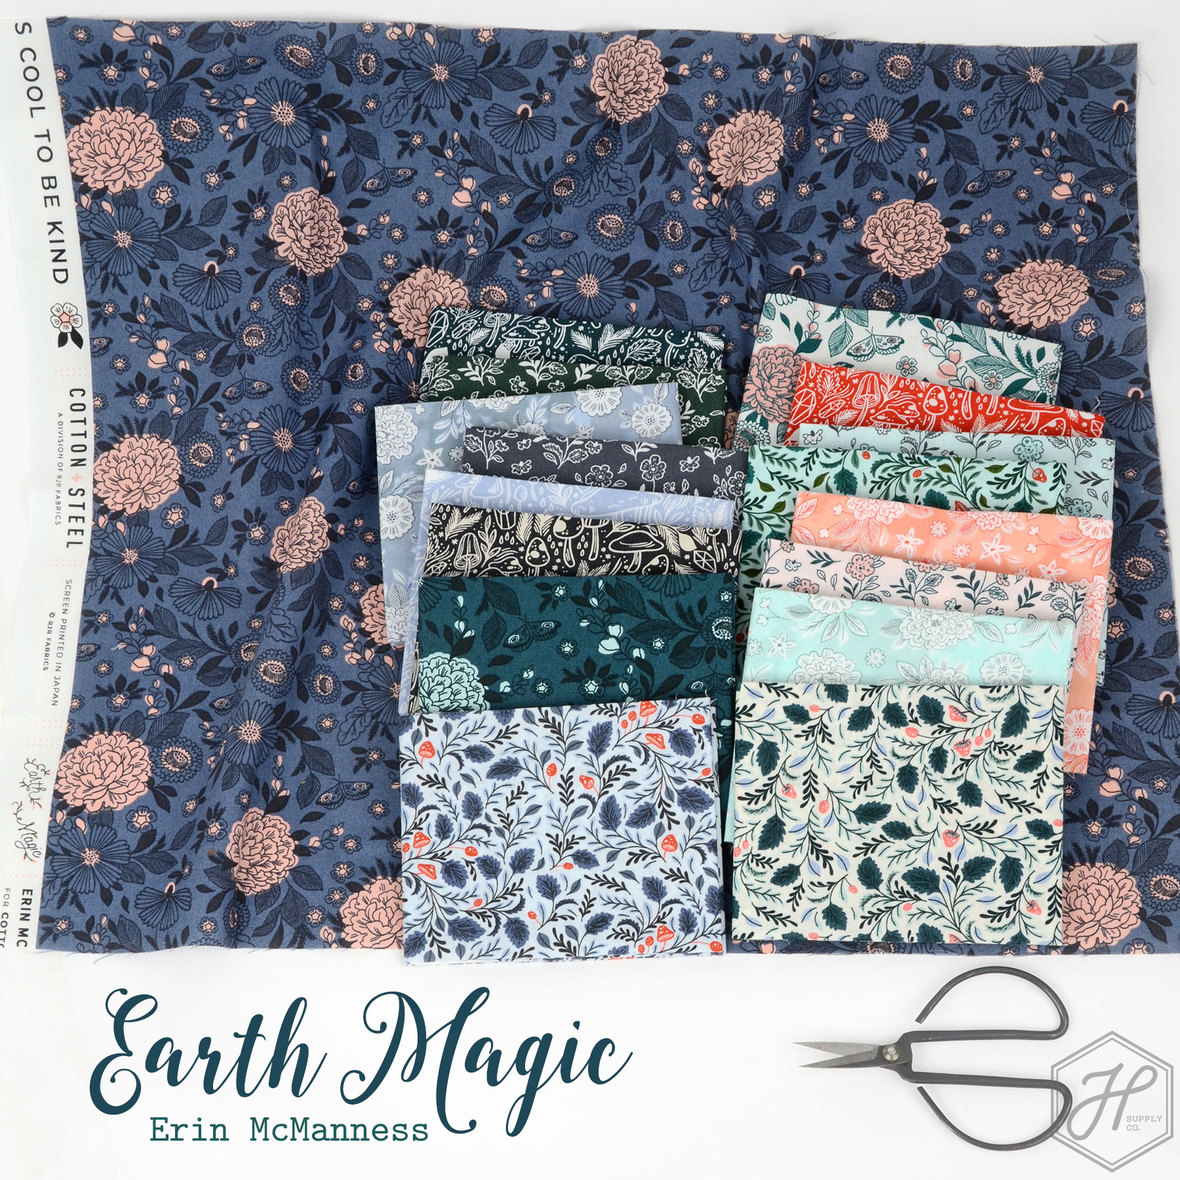 Earth-Magic-Fabric-Poster-Erin-McManness-of-Paper-Raven-Co-for-Cotton-and-Steel-at-Hawthorne-Supply-Co